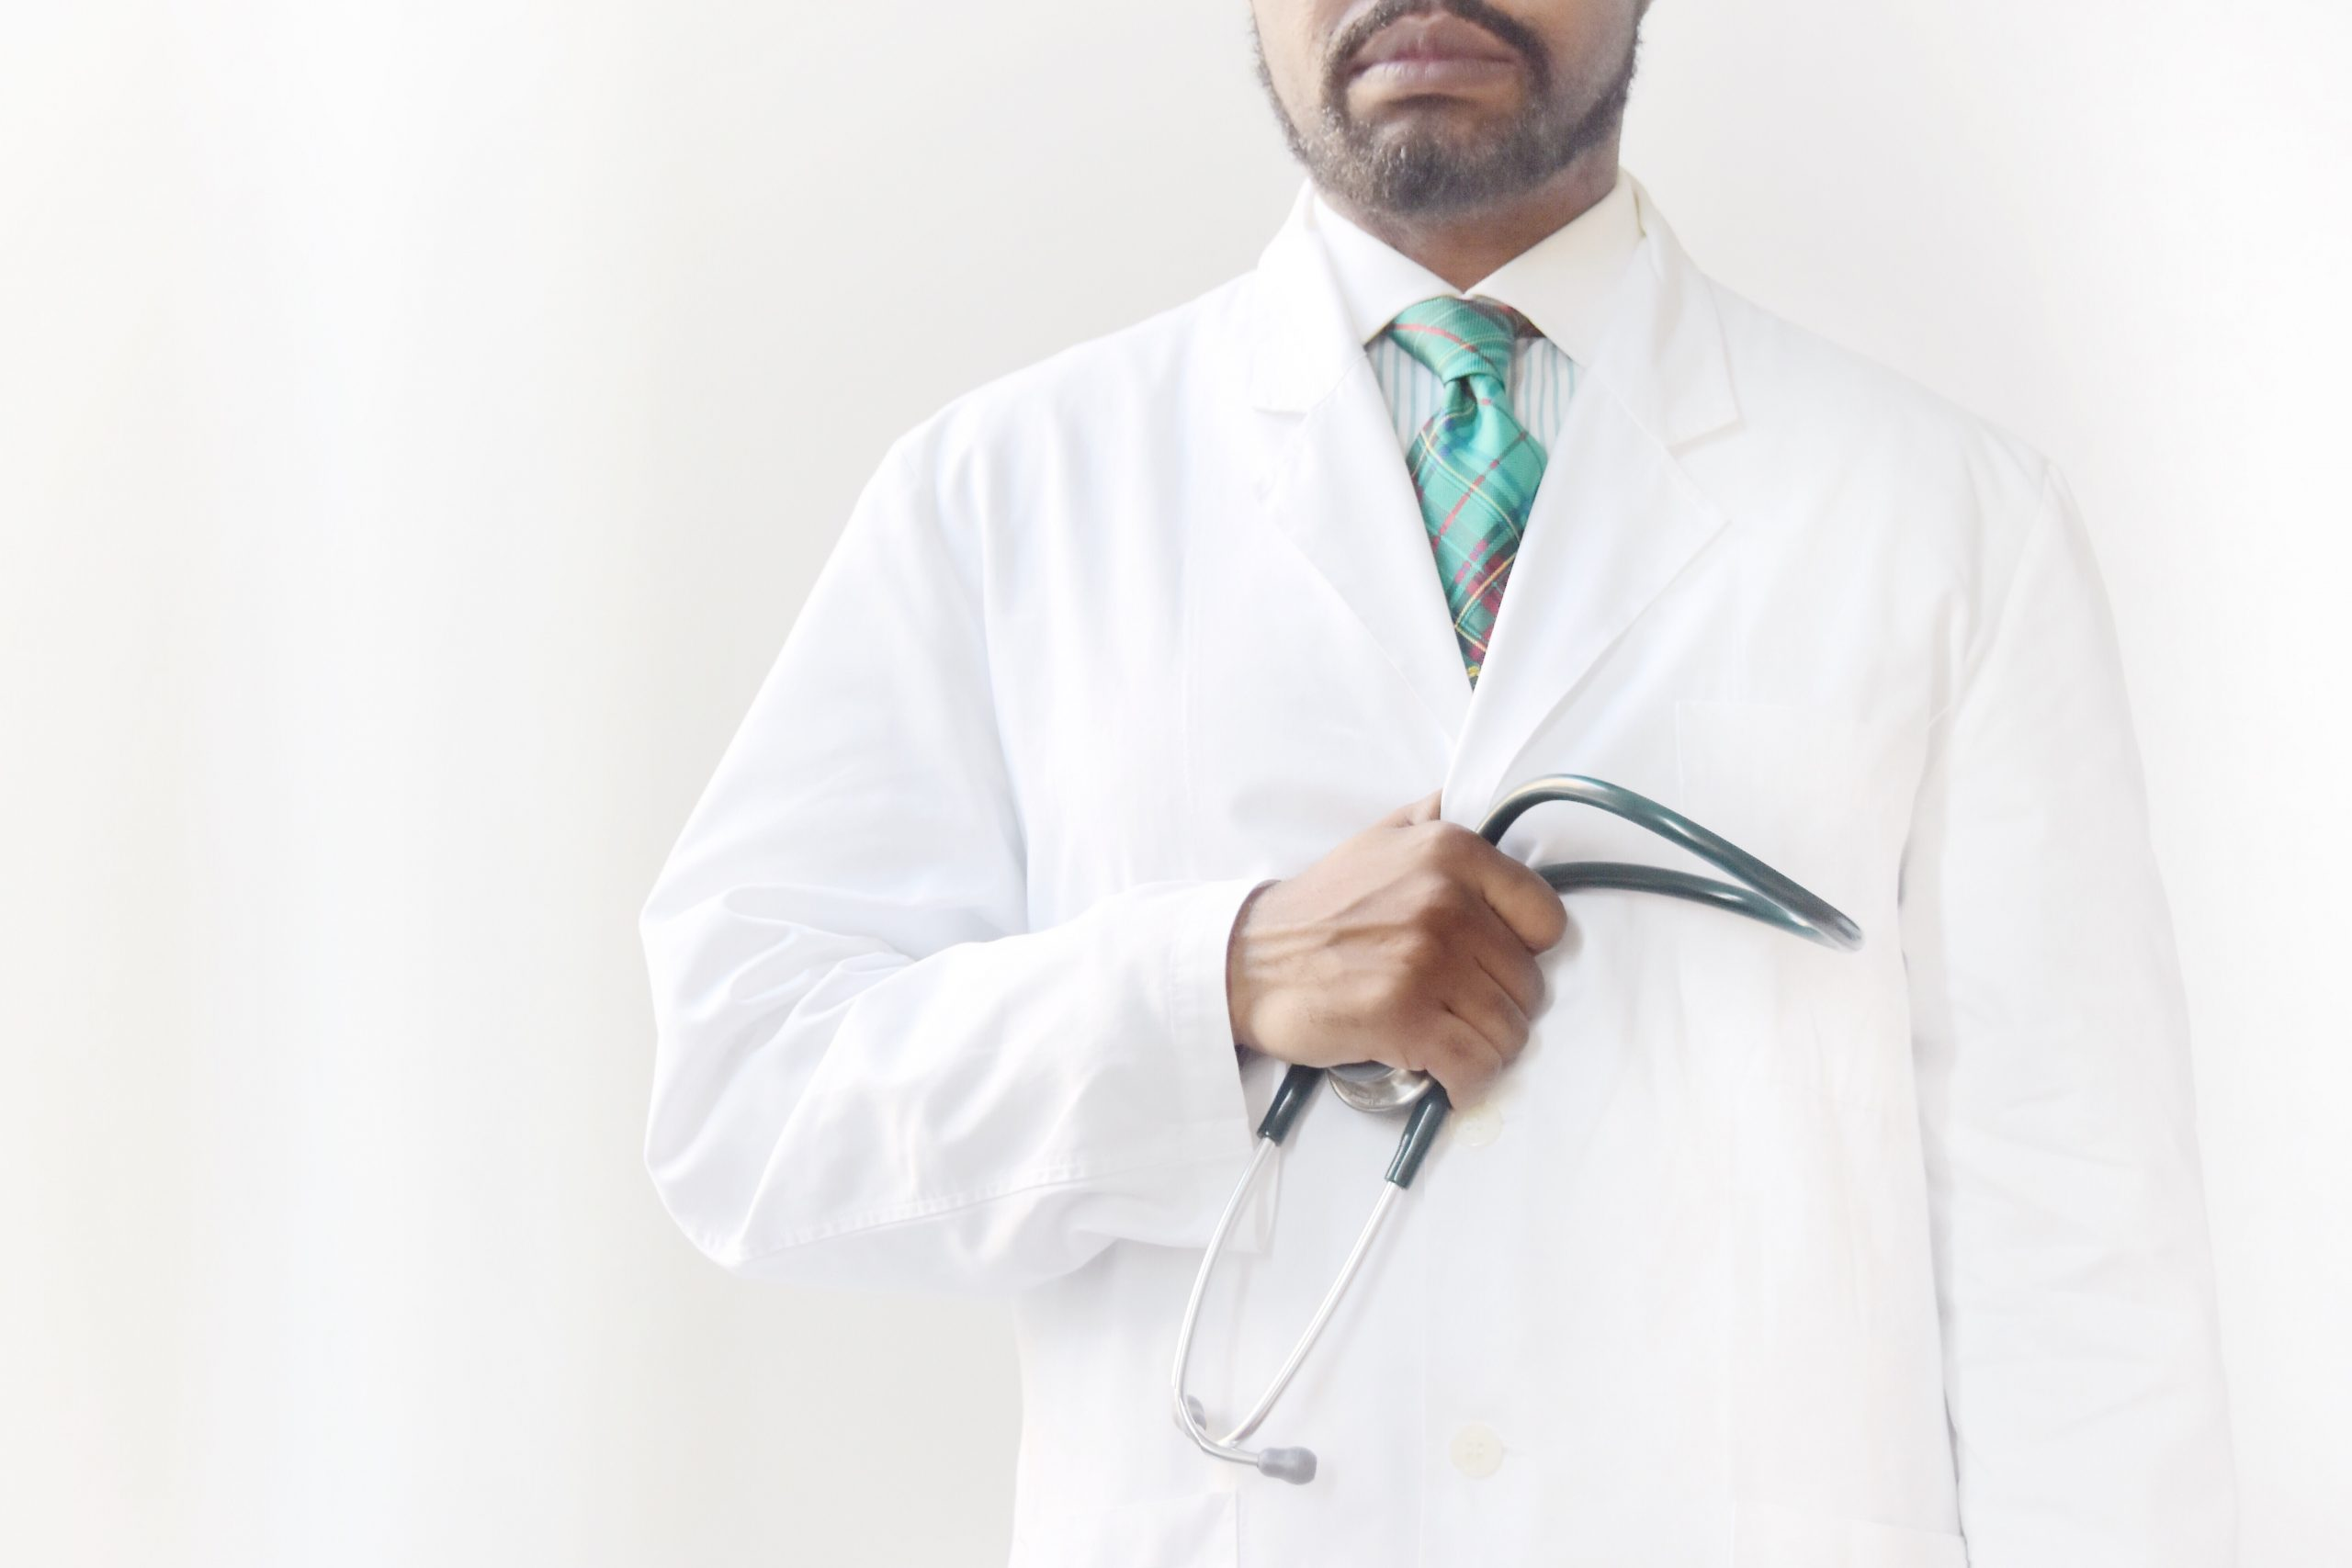 Medical professional standing with stethoscope